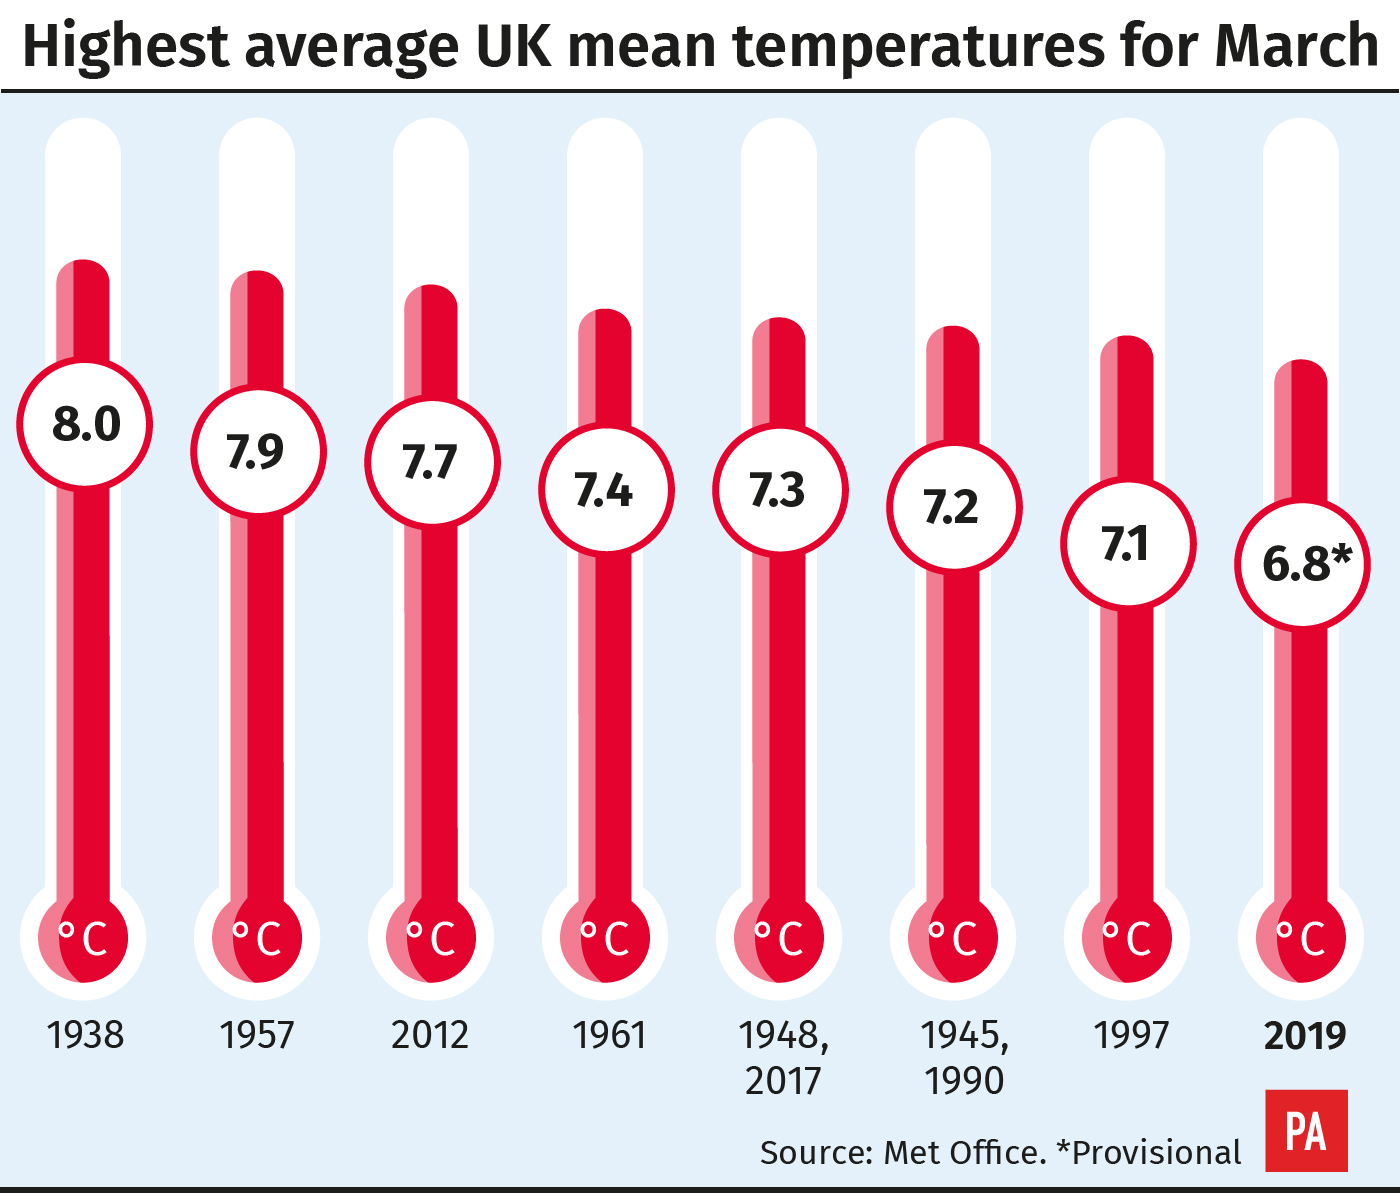 Highest average mean temperatures